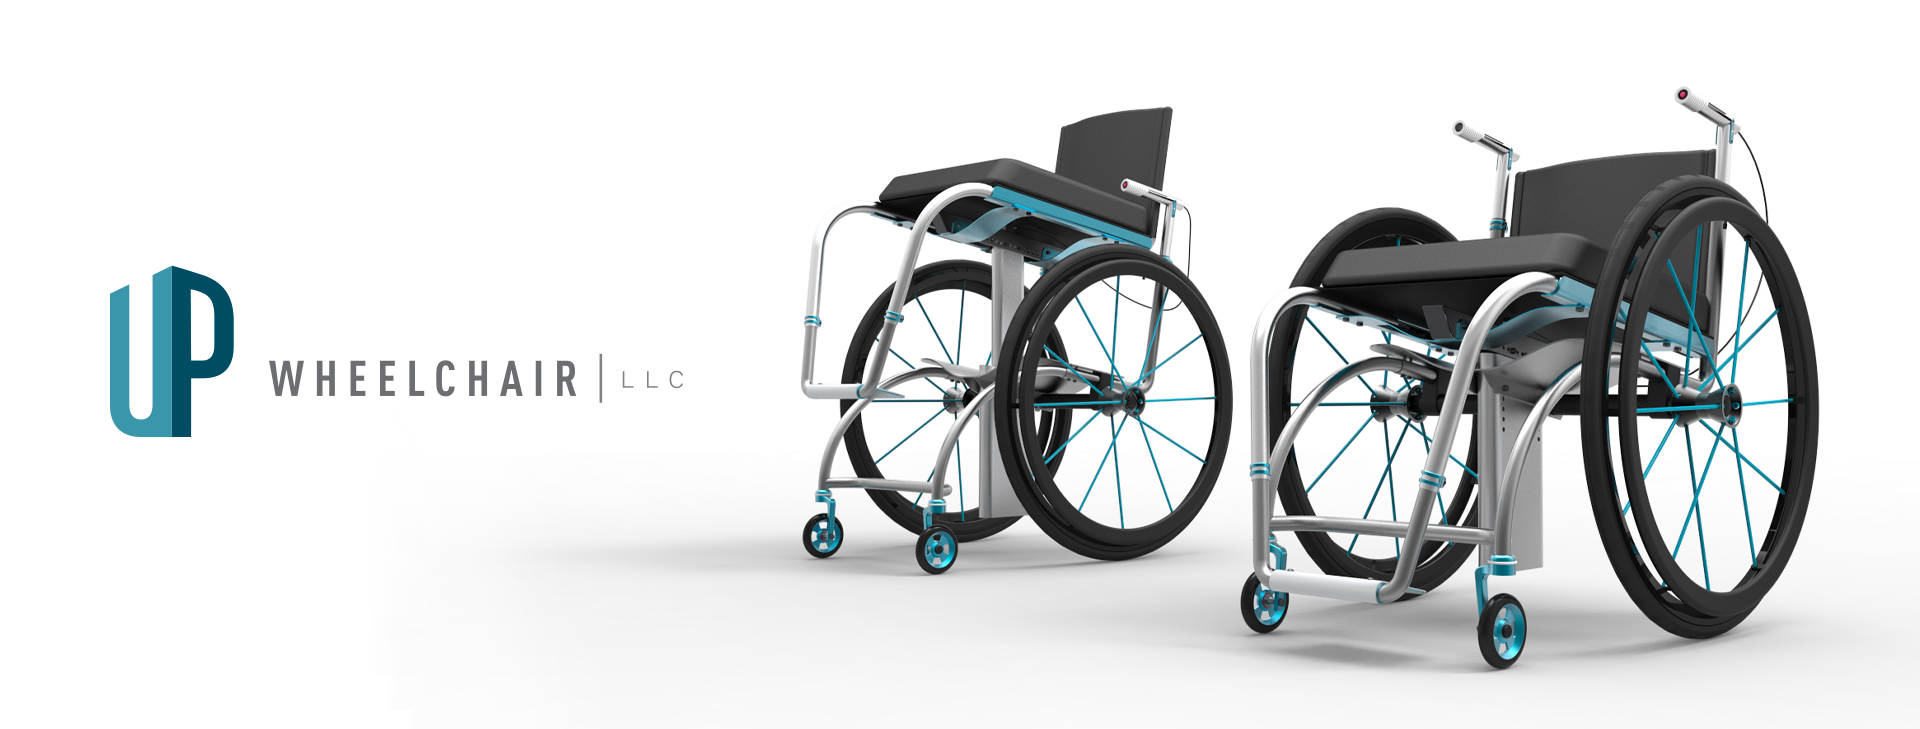 UP wheelchair product rendering